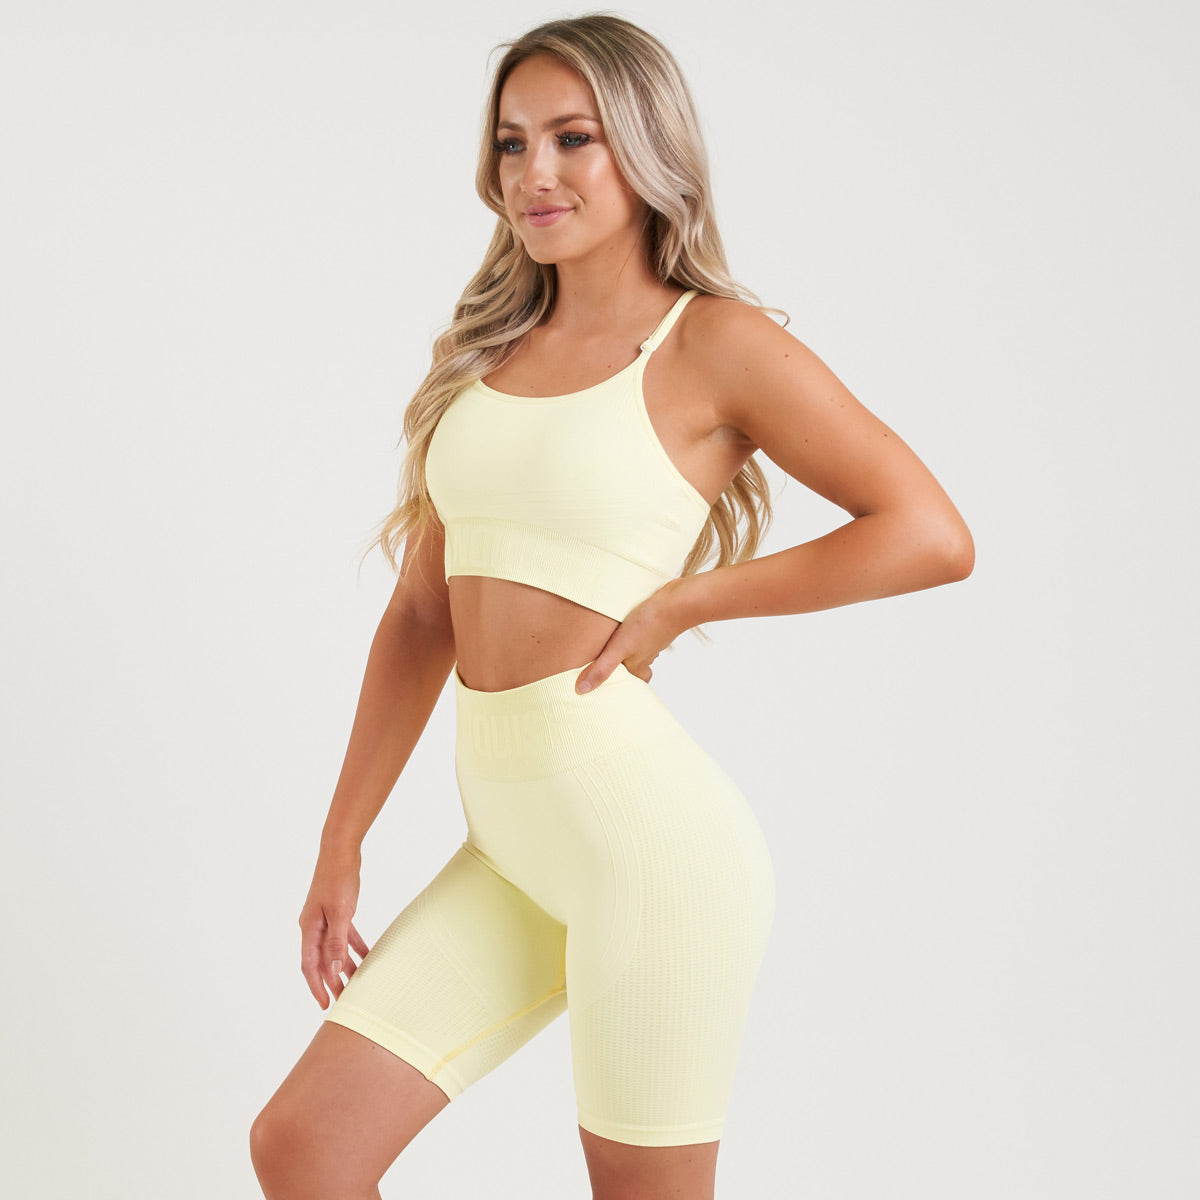 Vanquish Bright Soft Lemon Seamless Sports Bra